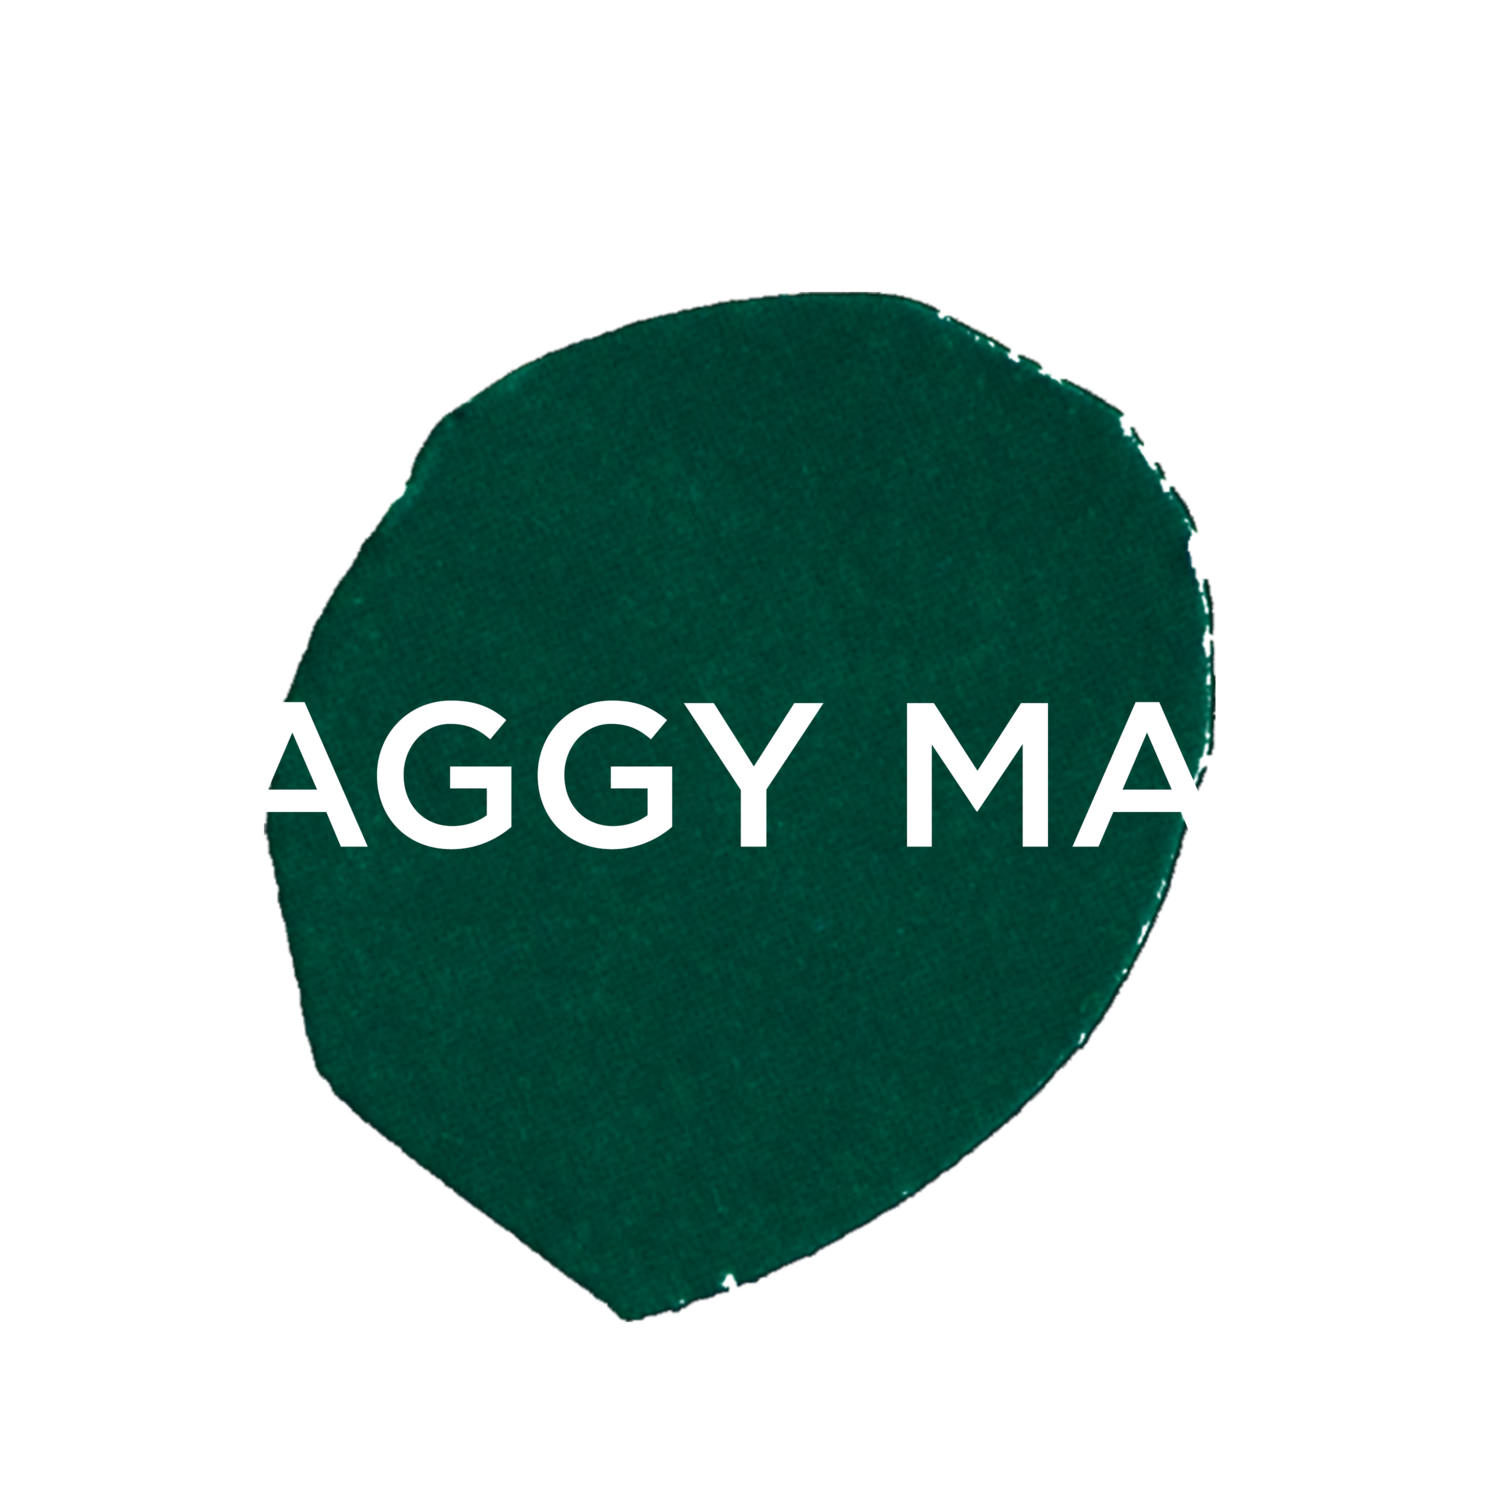 DAGGY MAN